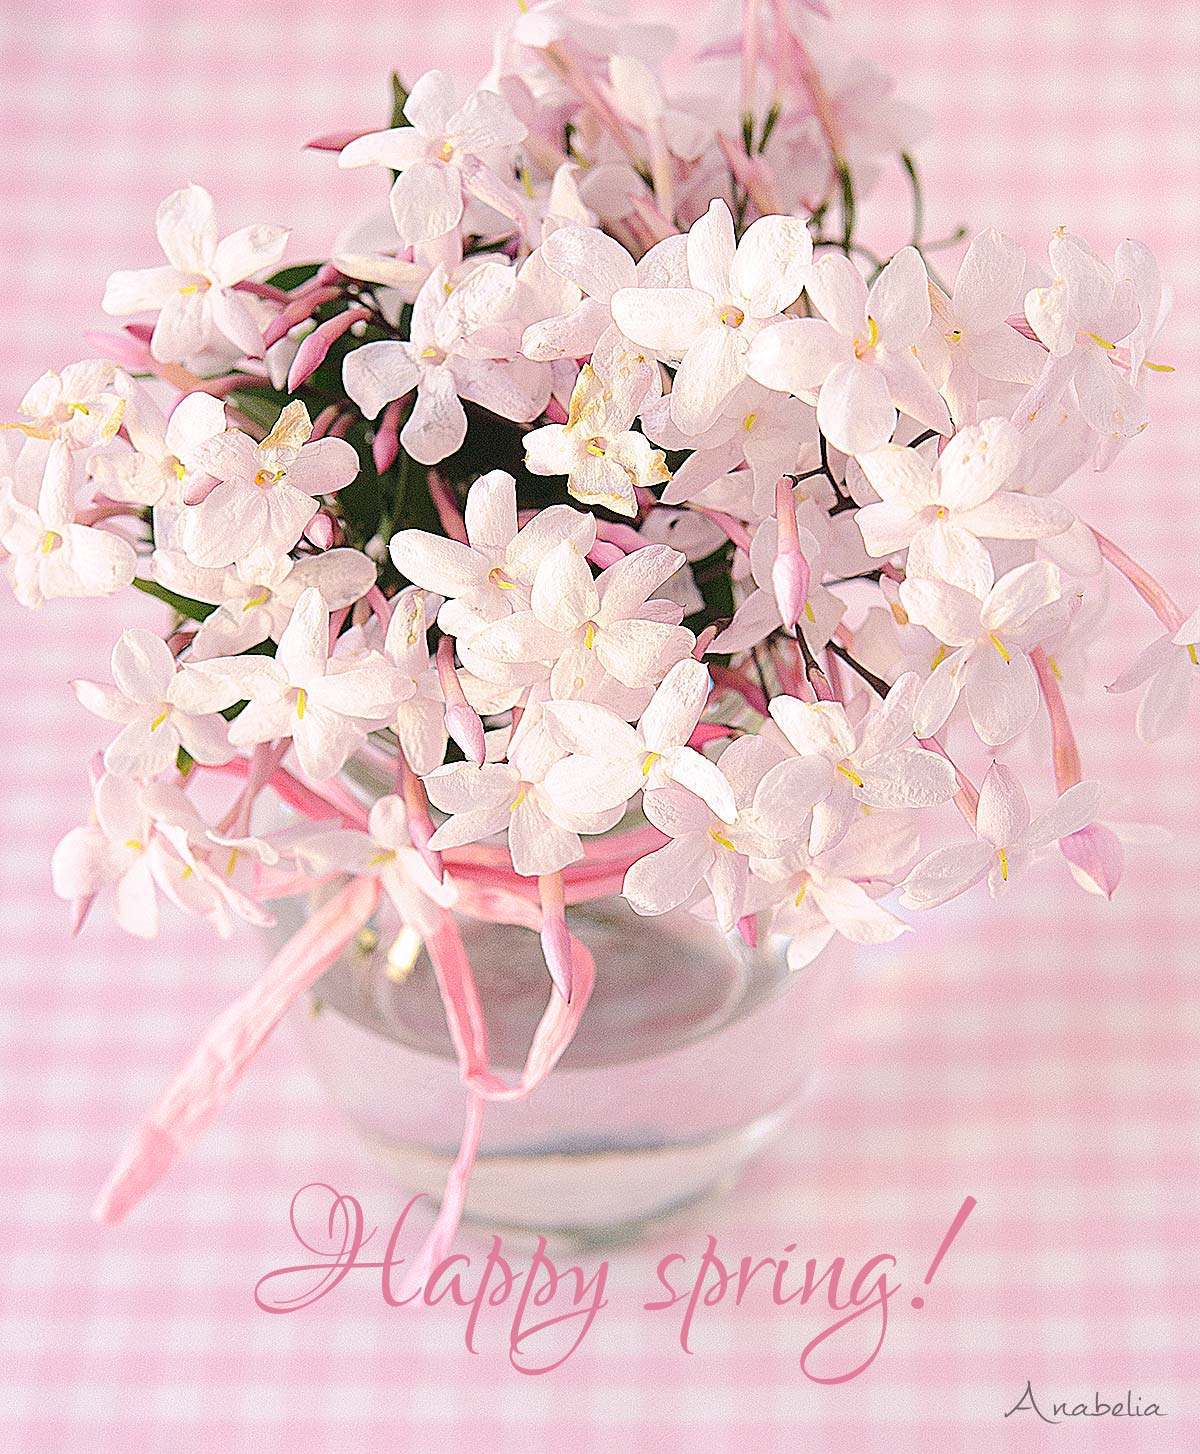 Happy spring by Anabelia